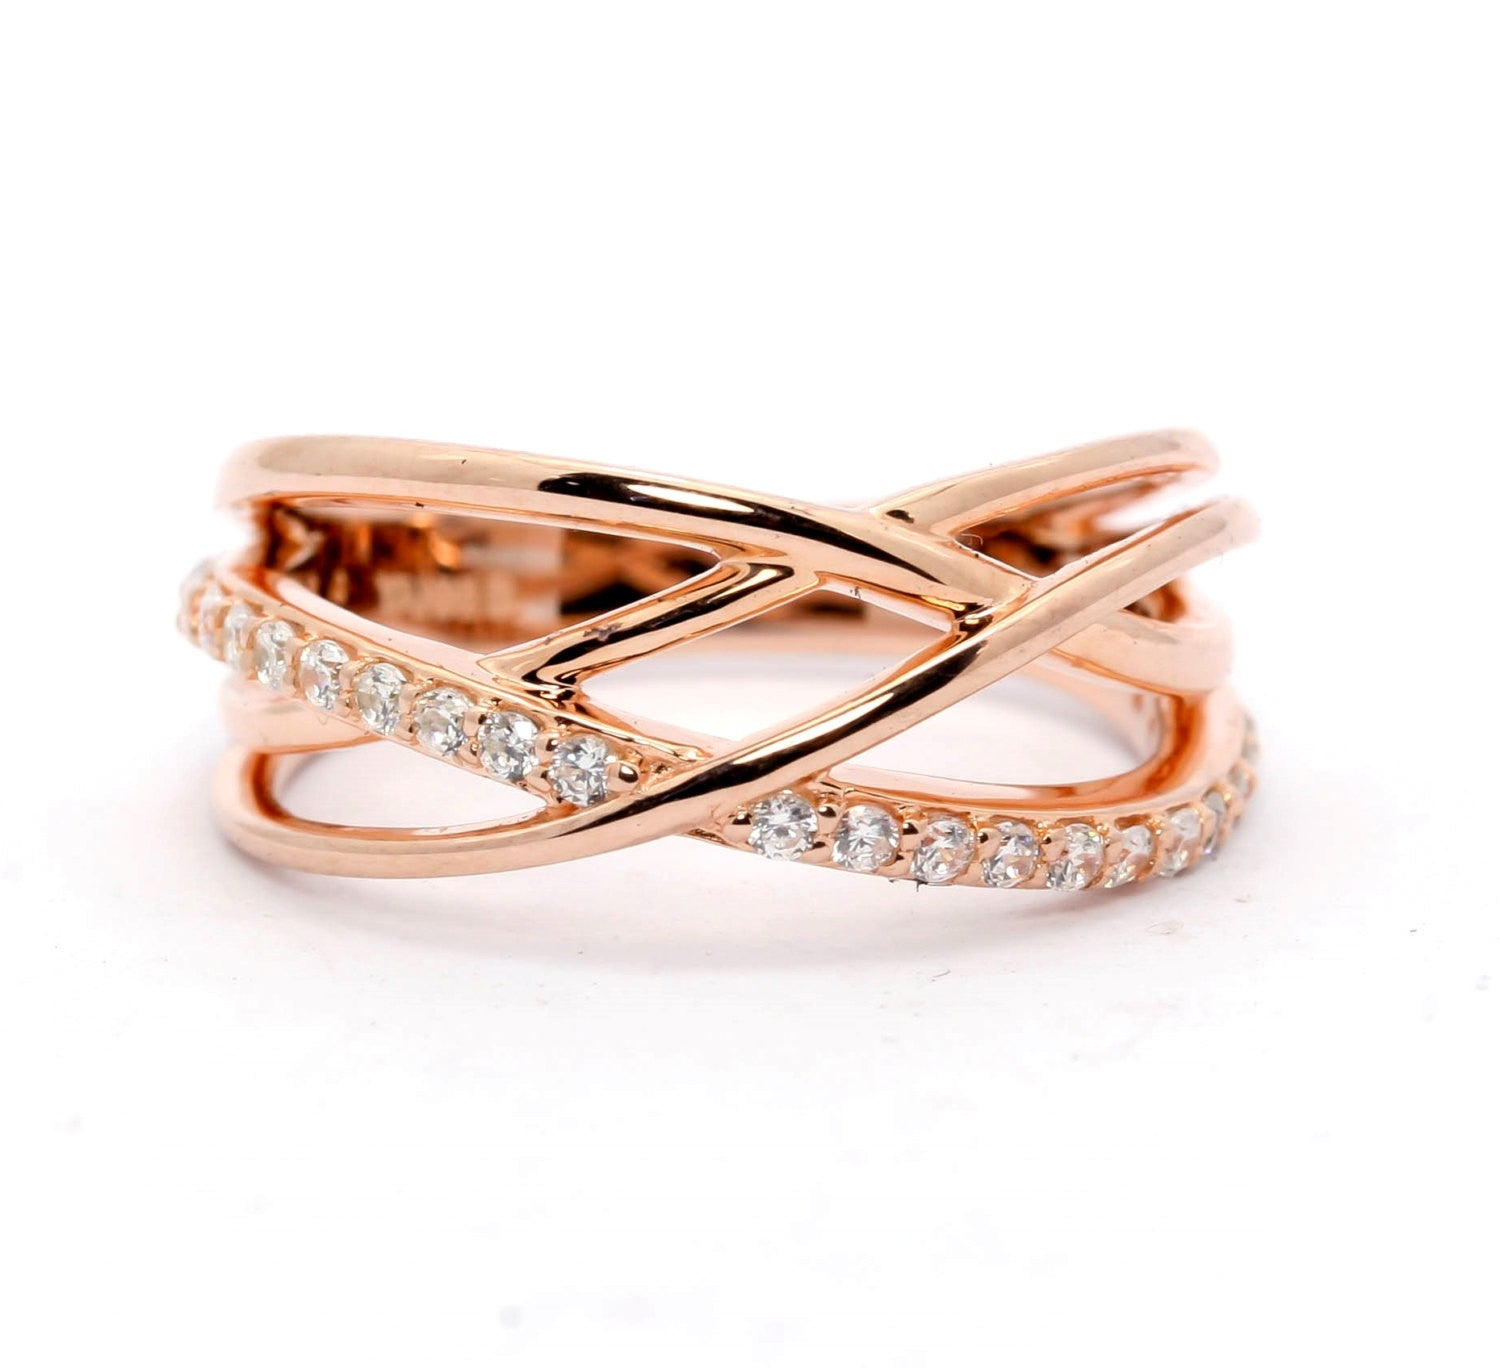 claw setting ring pin band diamond and bands multi engagement with shaped wedding matching set